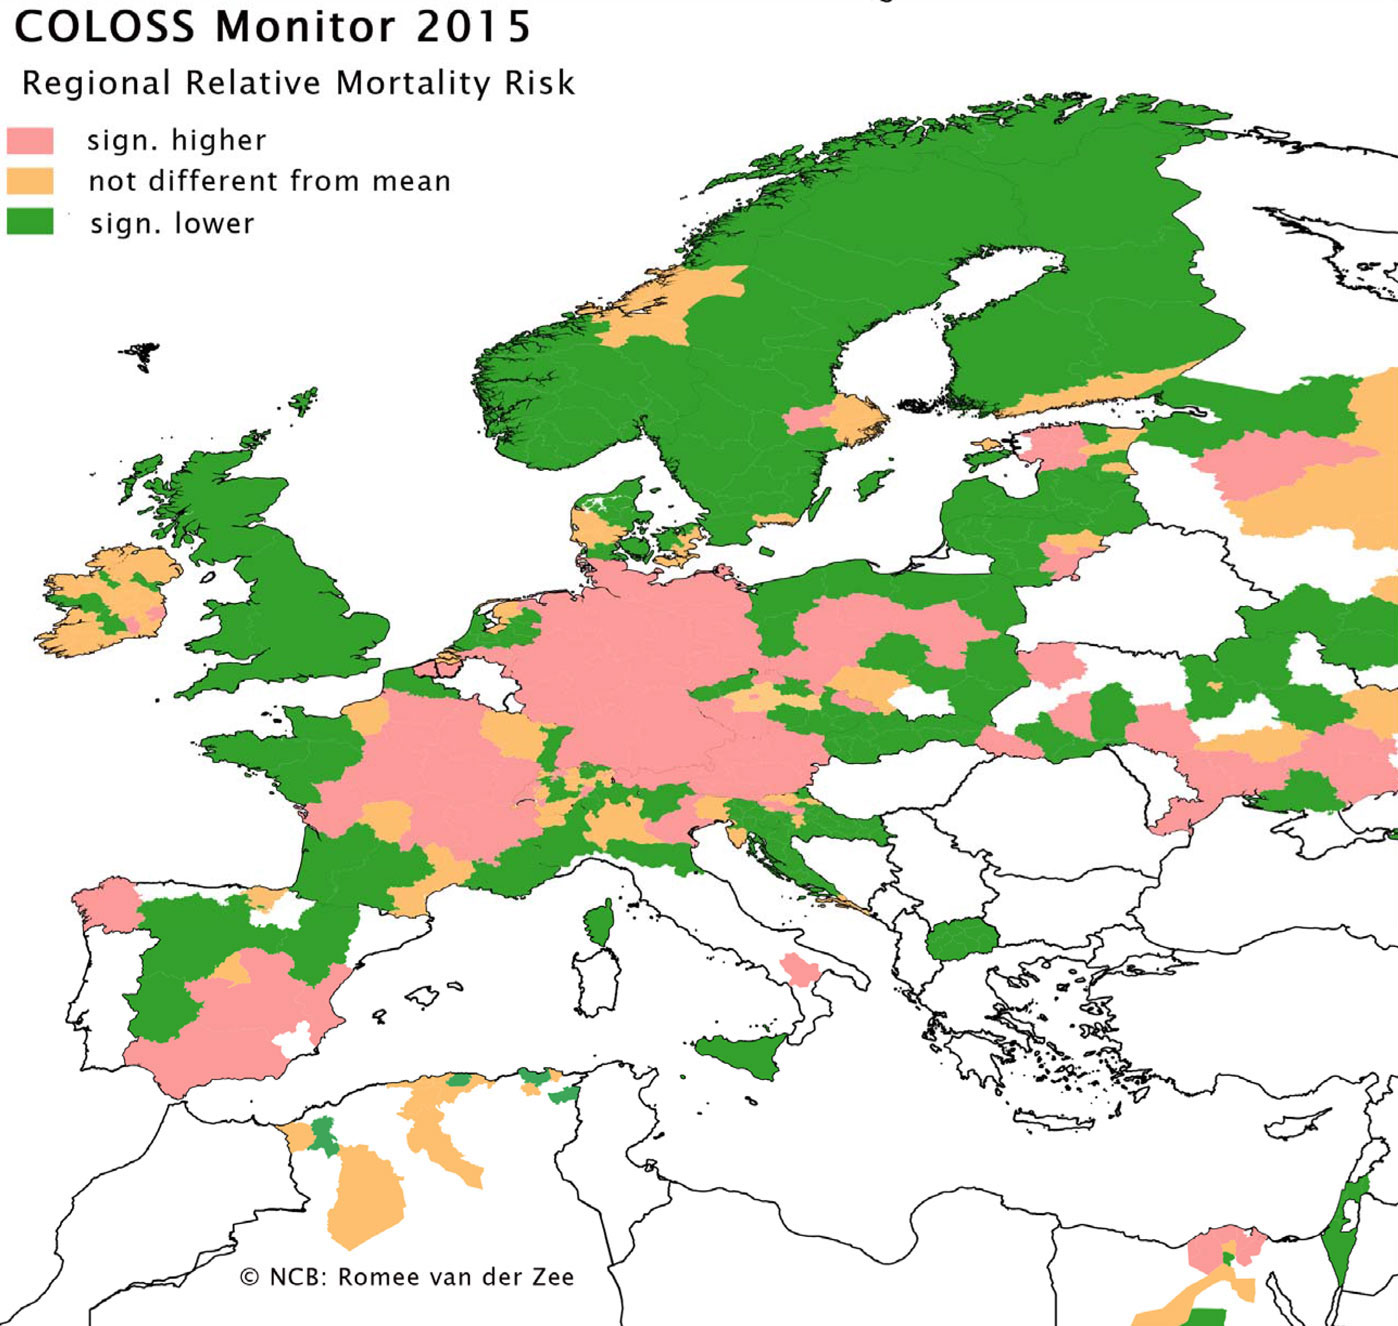 COLOSS Monitor 2015 - Regional Relative Mortality Risk